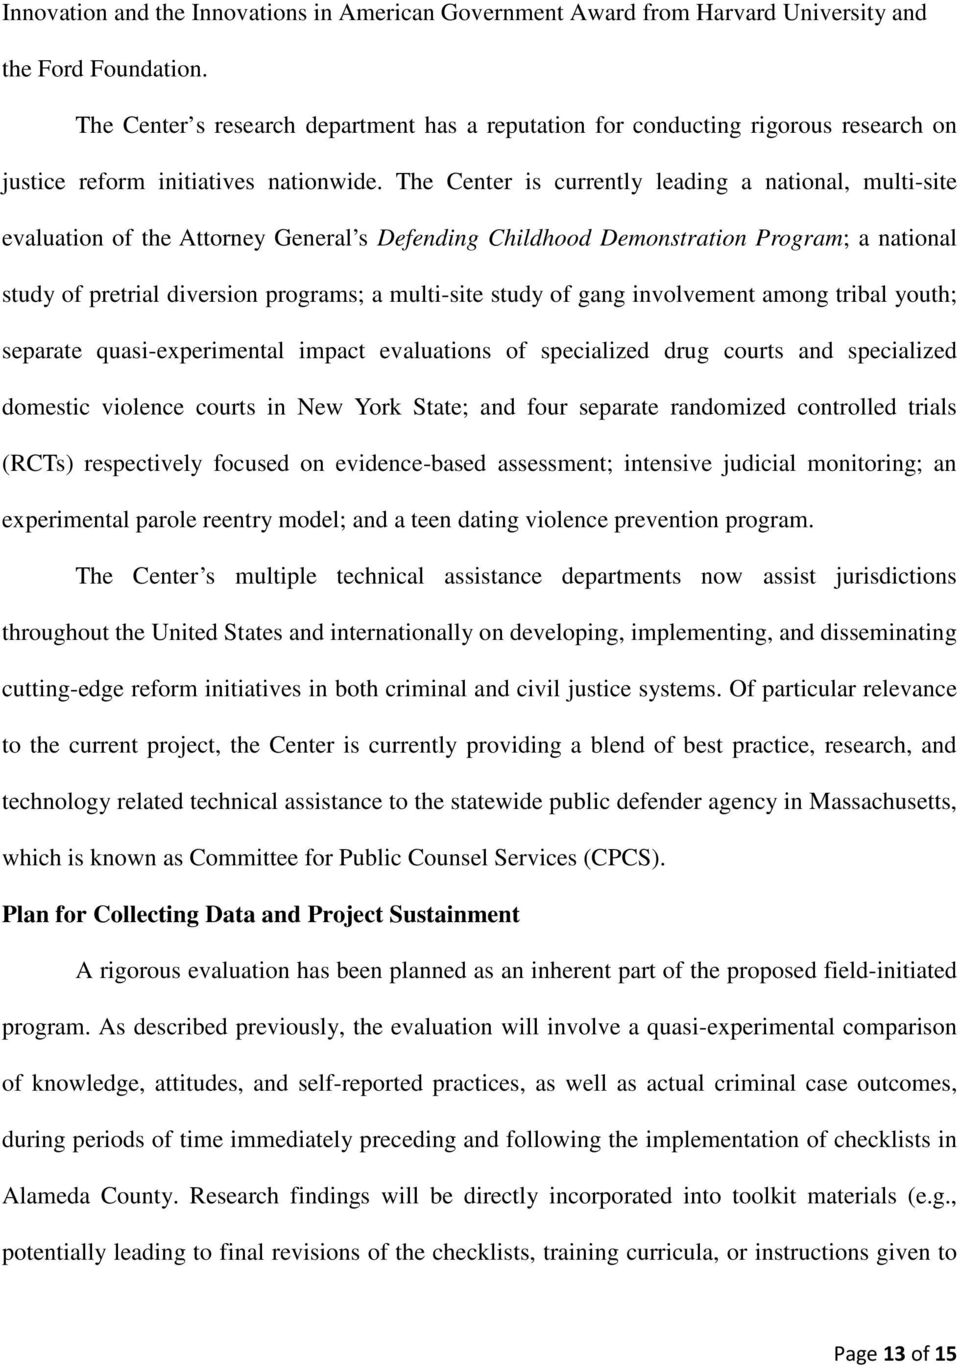 The Center is currently leading a national, multi-site evaluation of the Attorney General s Defending Childhood Demonstration Program; a national study of pretrial diversion programs; a multi-site